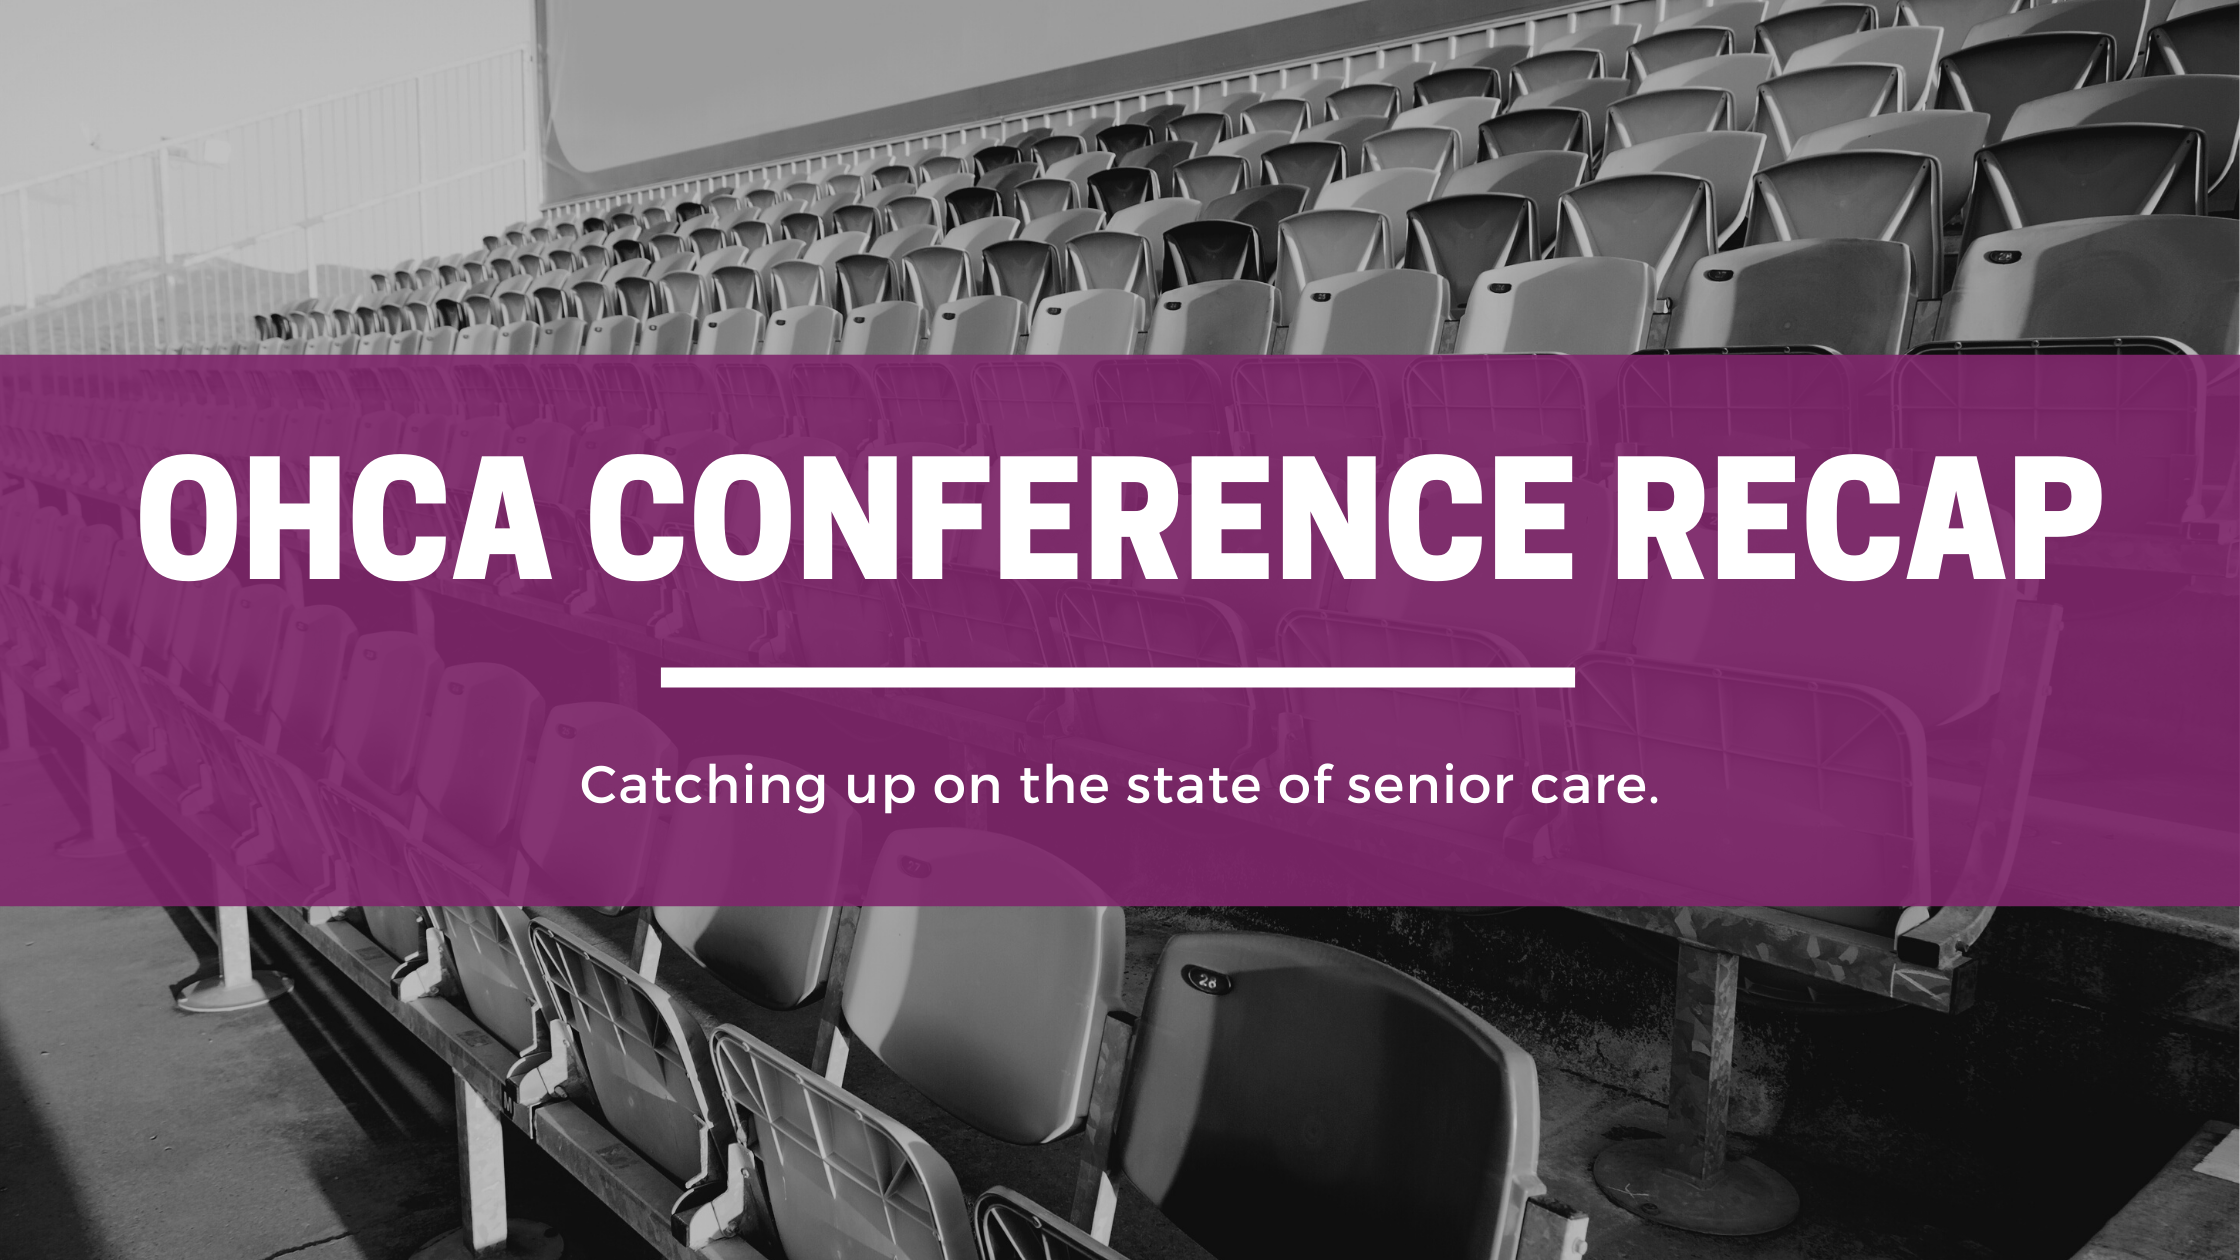 OHCA Conference Recap: Catching Up on the State of Senior Care